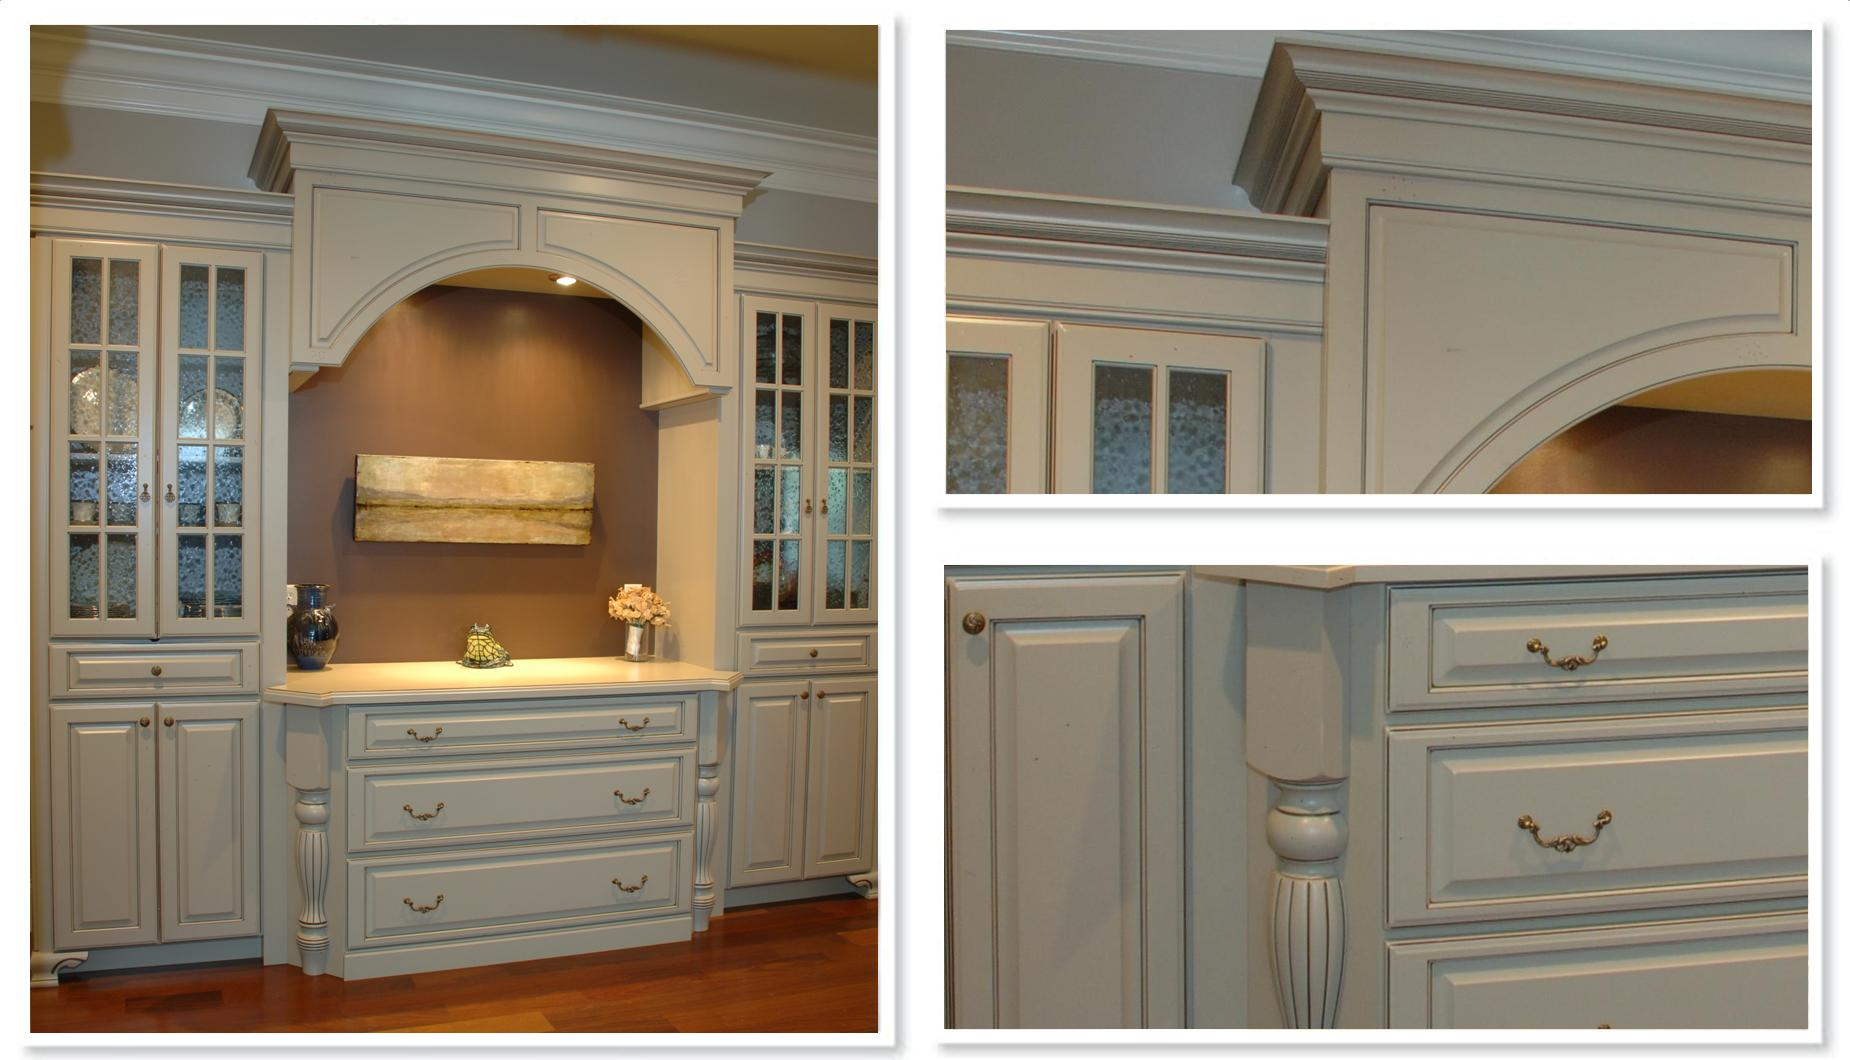 ... Butler Pantry Cabinet With Furniture Like Butlerus Pantry Cabinetry  White Cabinets U Beck With Oak Pantry